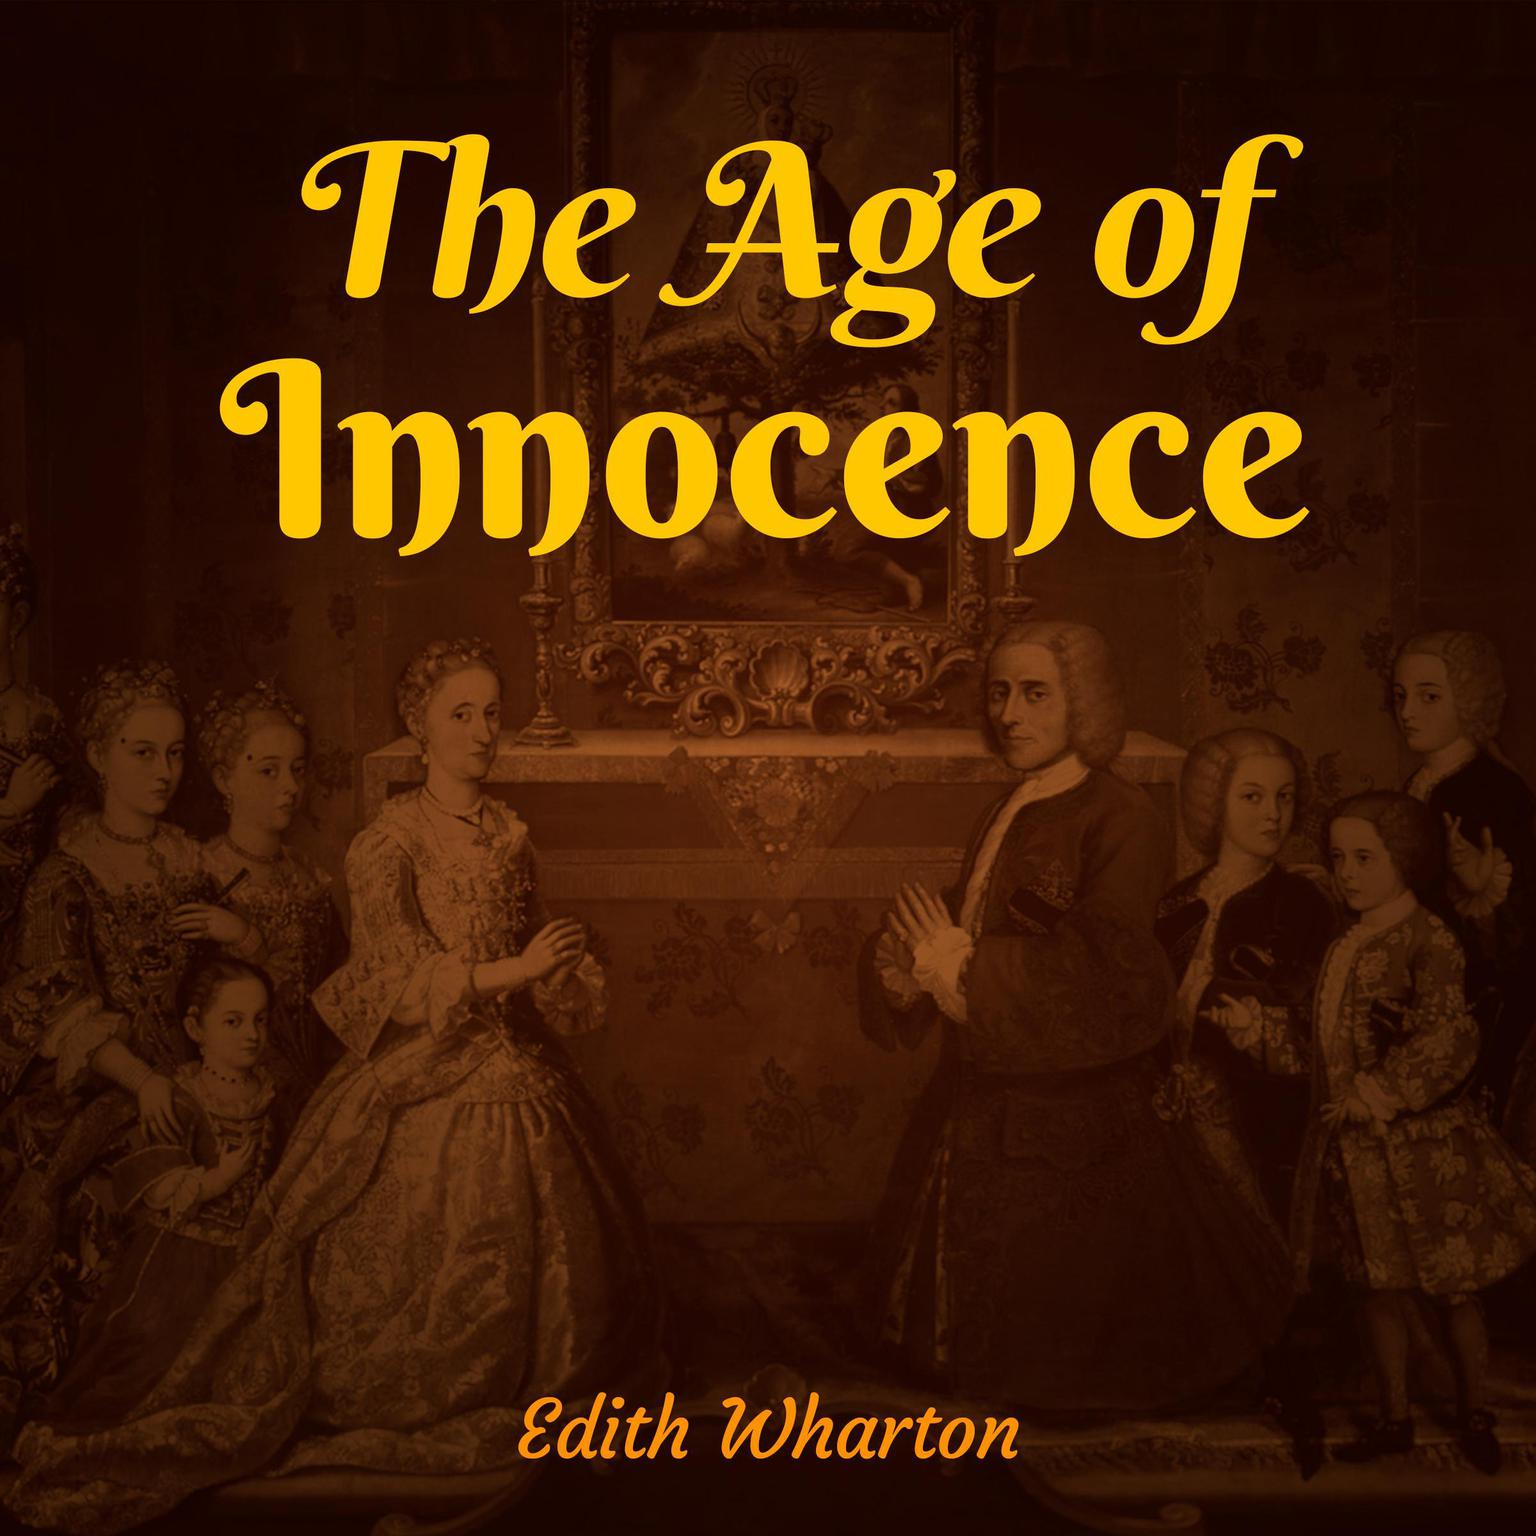 The Age Of Innocence Audiobook By Edith Wharton Read By